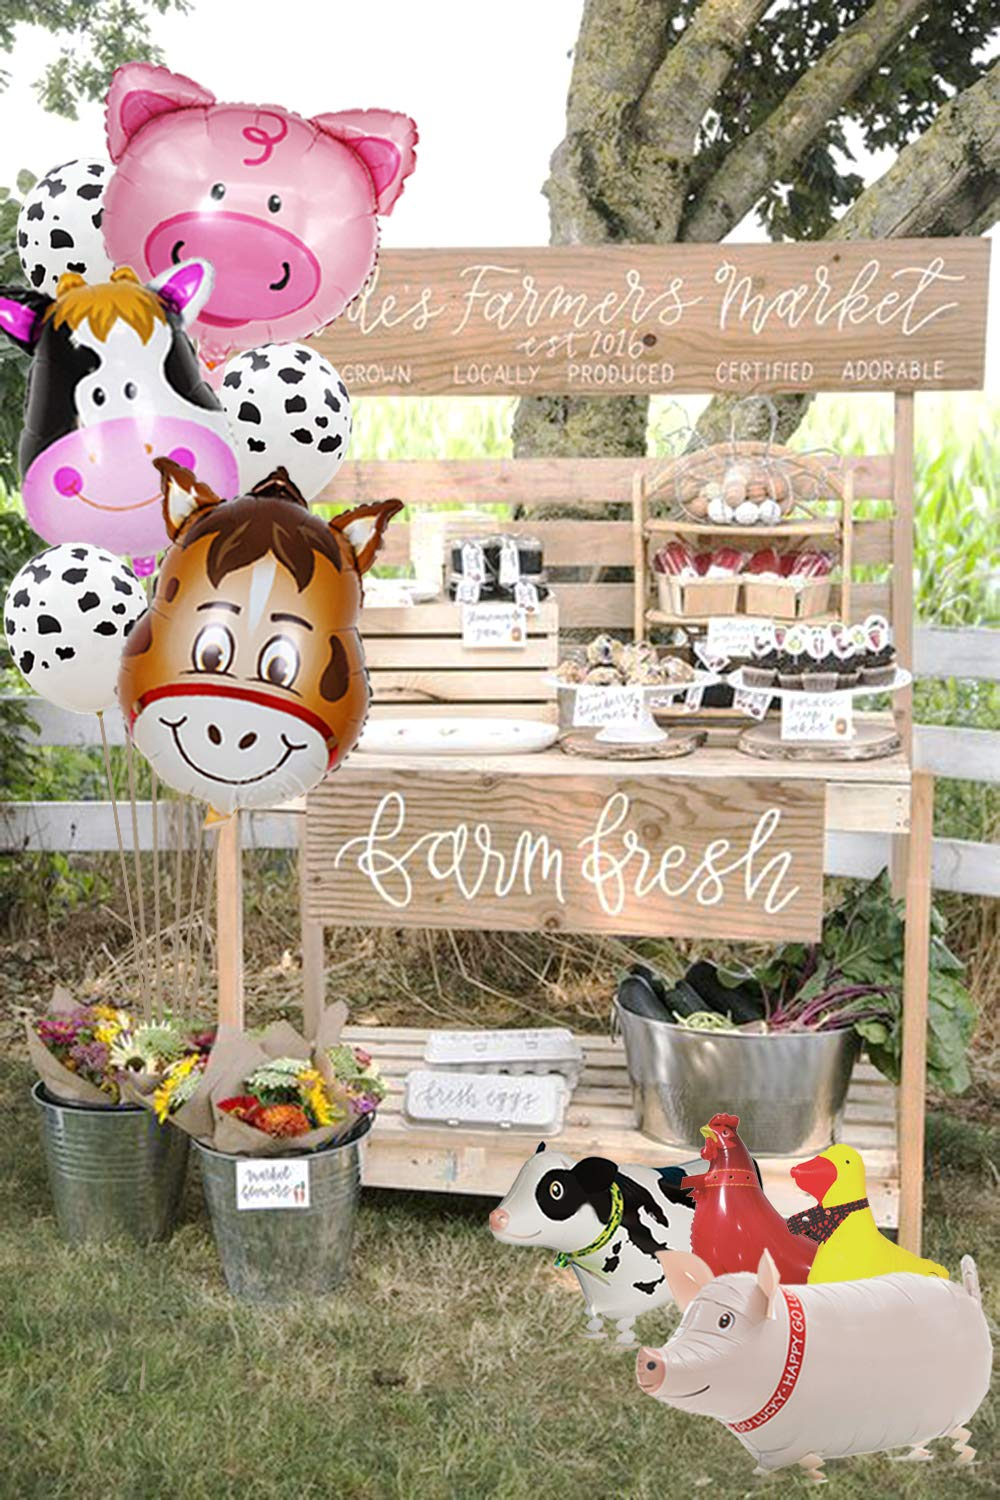 Amazon.com: Decoración de fiesta de animales de granja ...